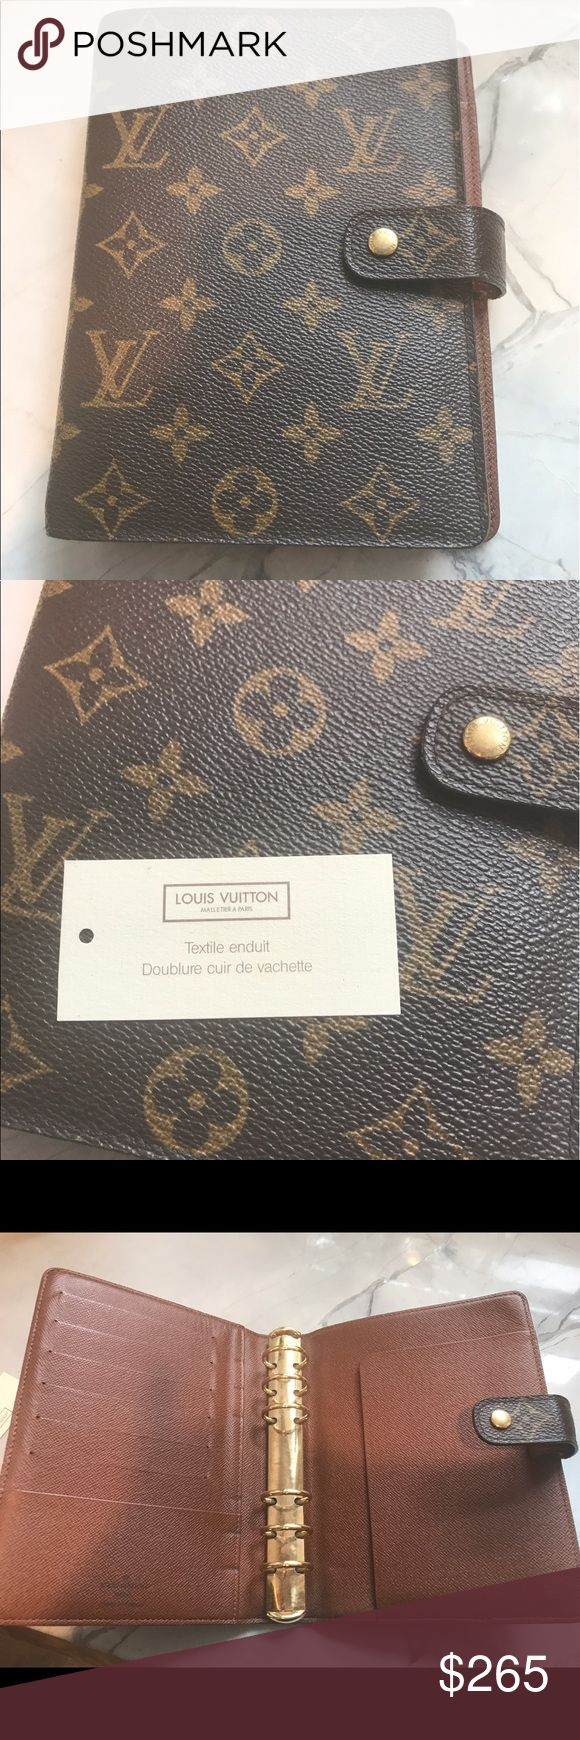 Authentic Louis Vuitton medium size planner Authentic Louis Vuitton monogram planner. Size medium. Rarely used. Great condition Louis Vuitton Accessories